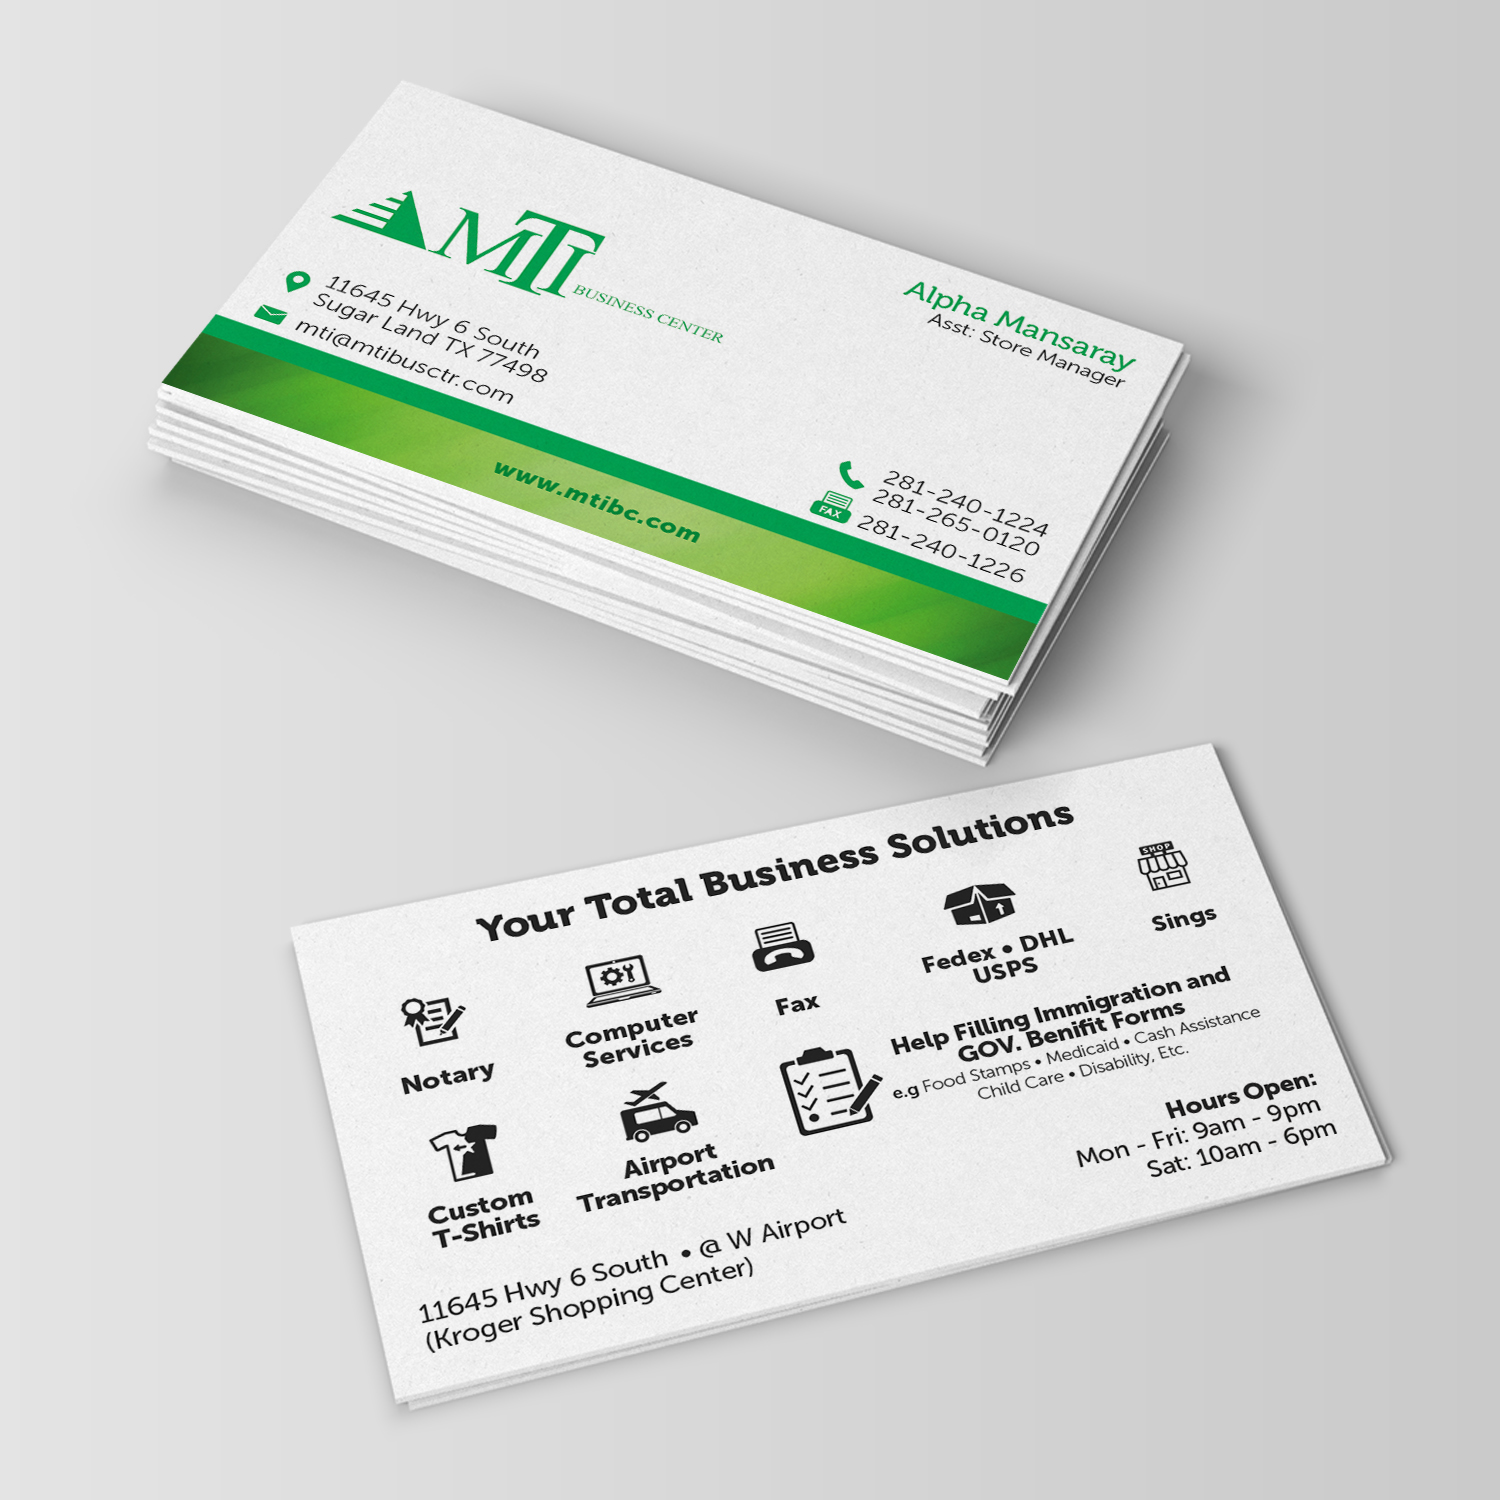 Business business card design for mti business center by annie white business business card design for mti business center in united states design 18205972 reheart Image collections